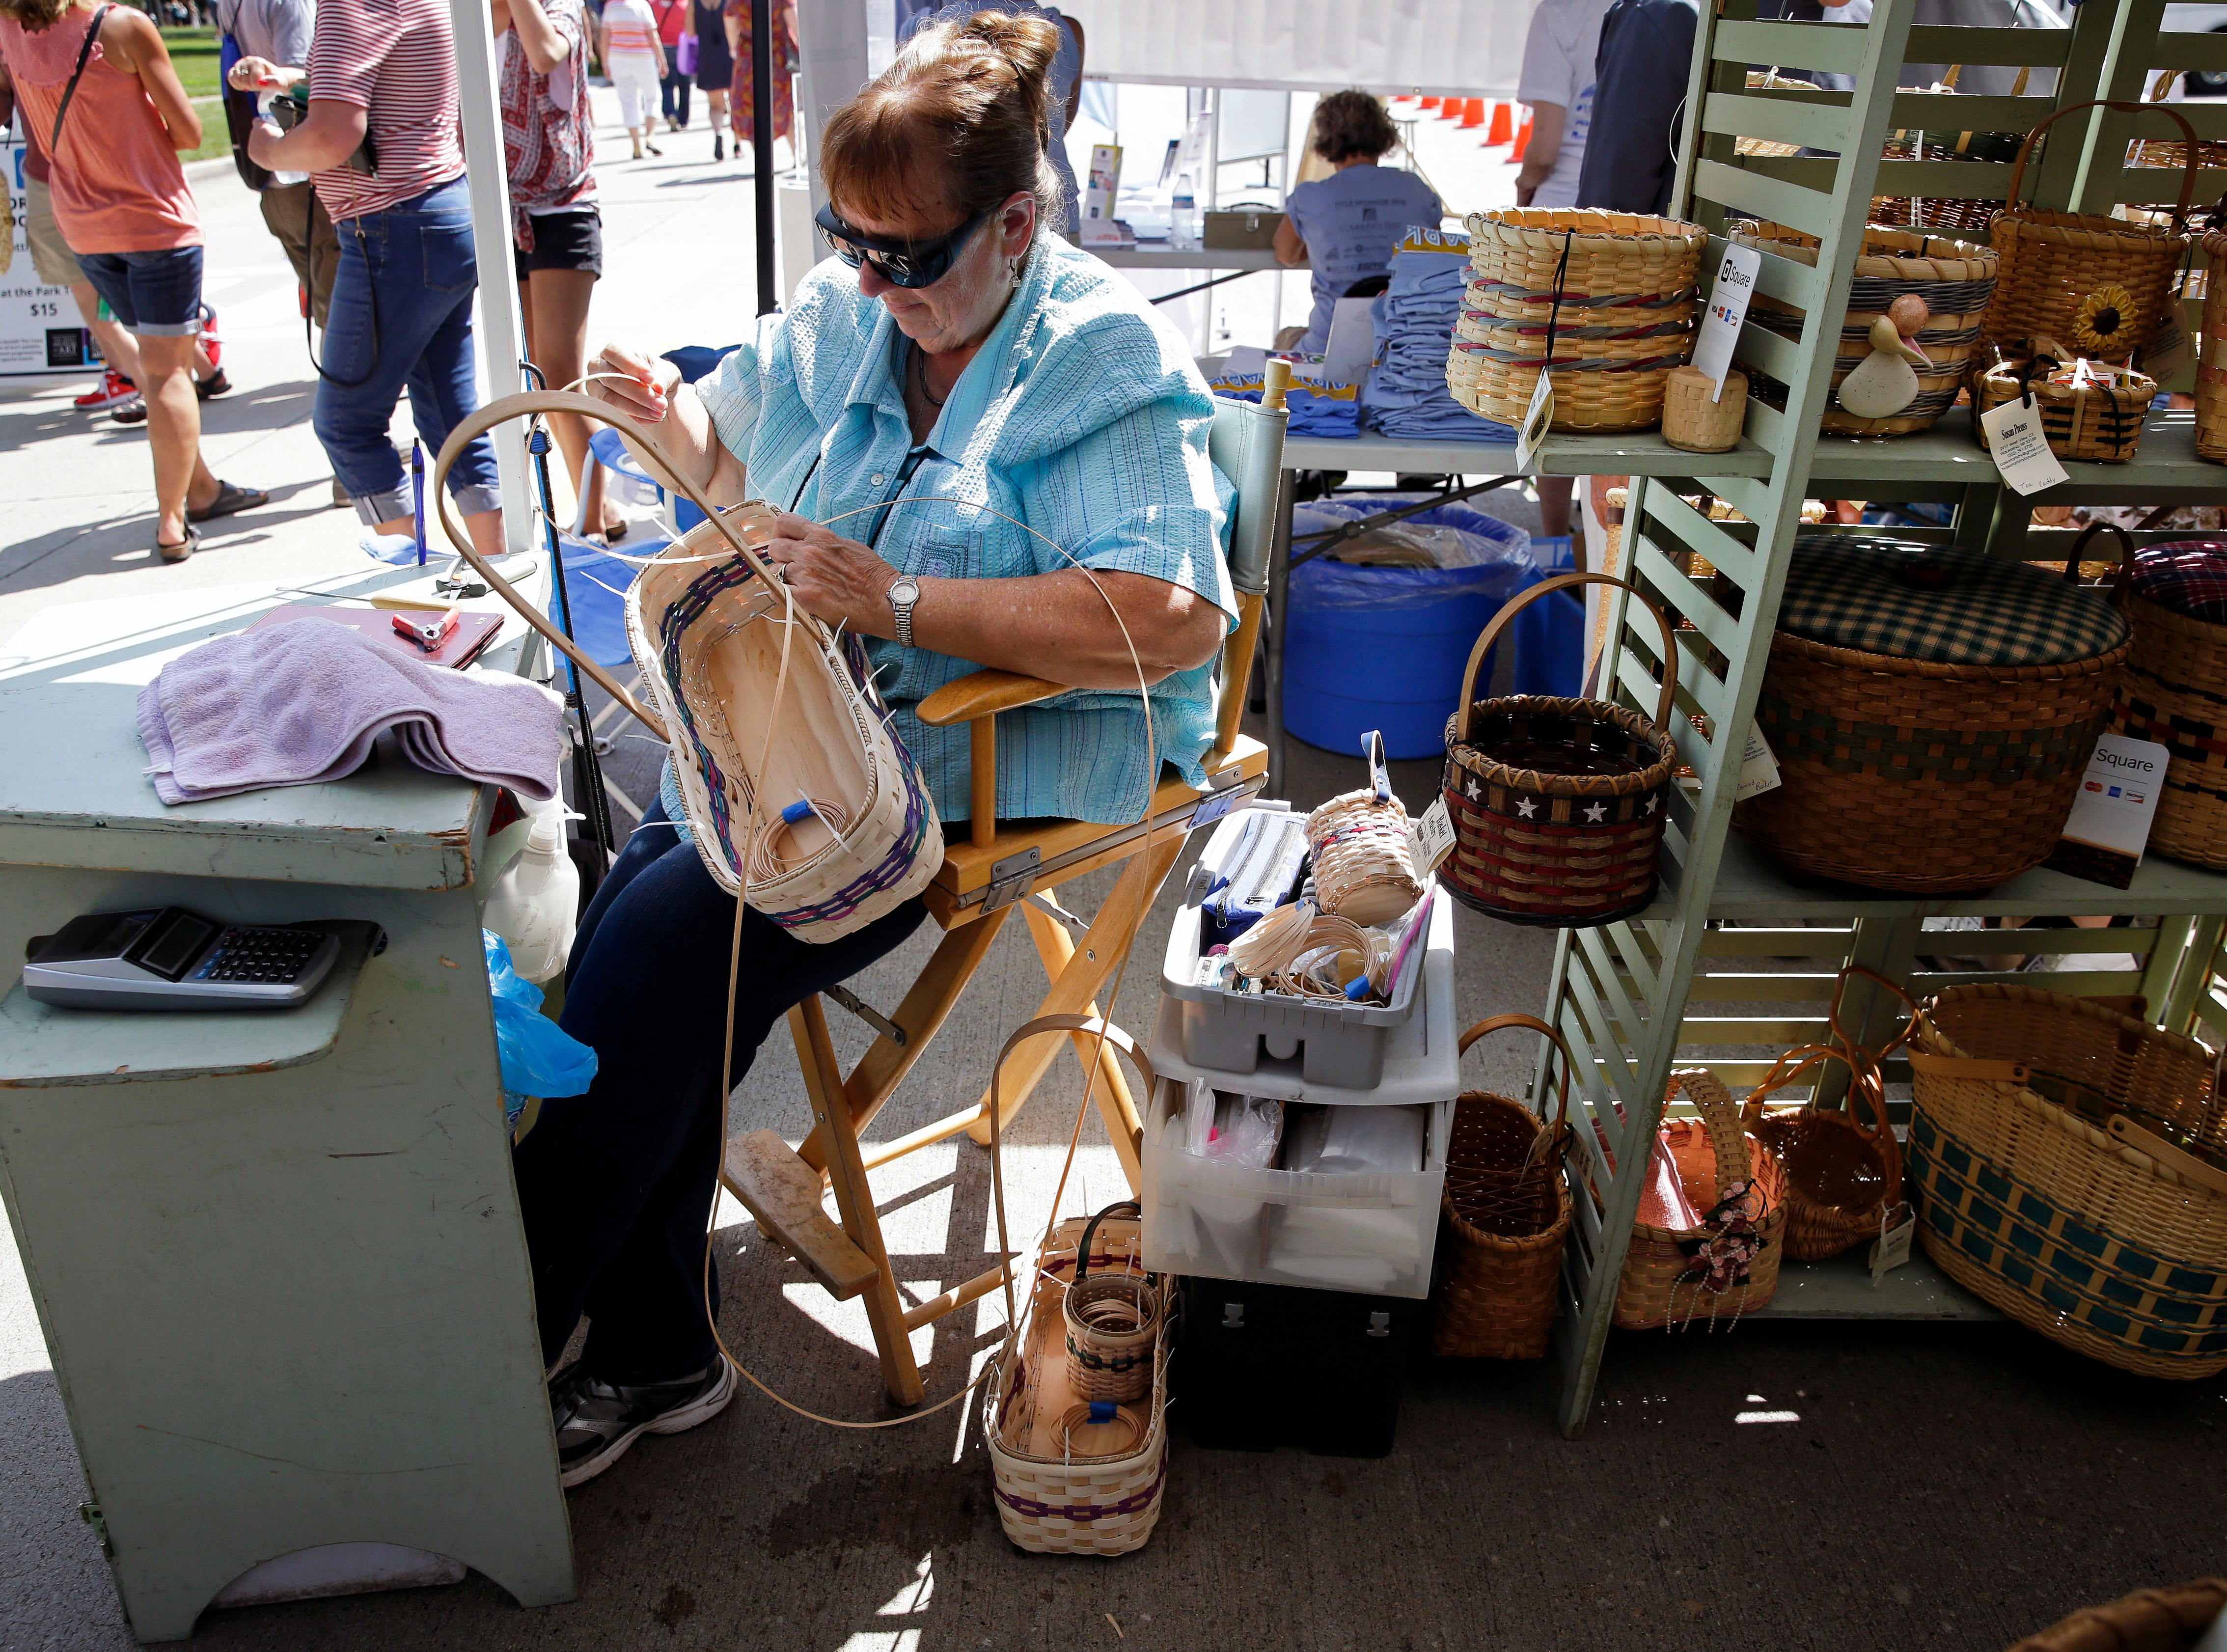 Susan Preuss weaves a basket at her booth as the 58th annual Art at the Park takes place Sunday, July 29, 2018, at City Park in Appleton, Wis.Ron Page/USA TODAY NETWORK-Wisconsin